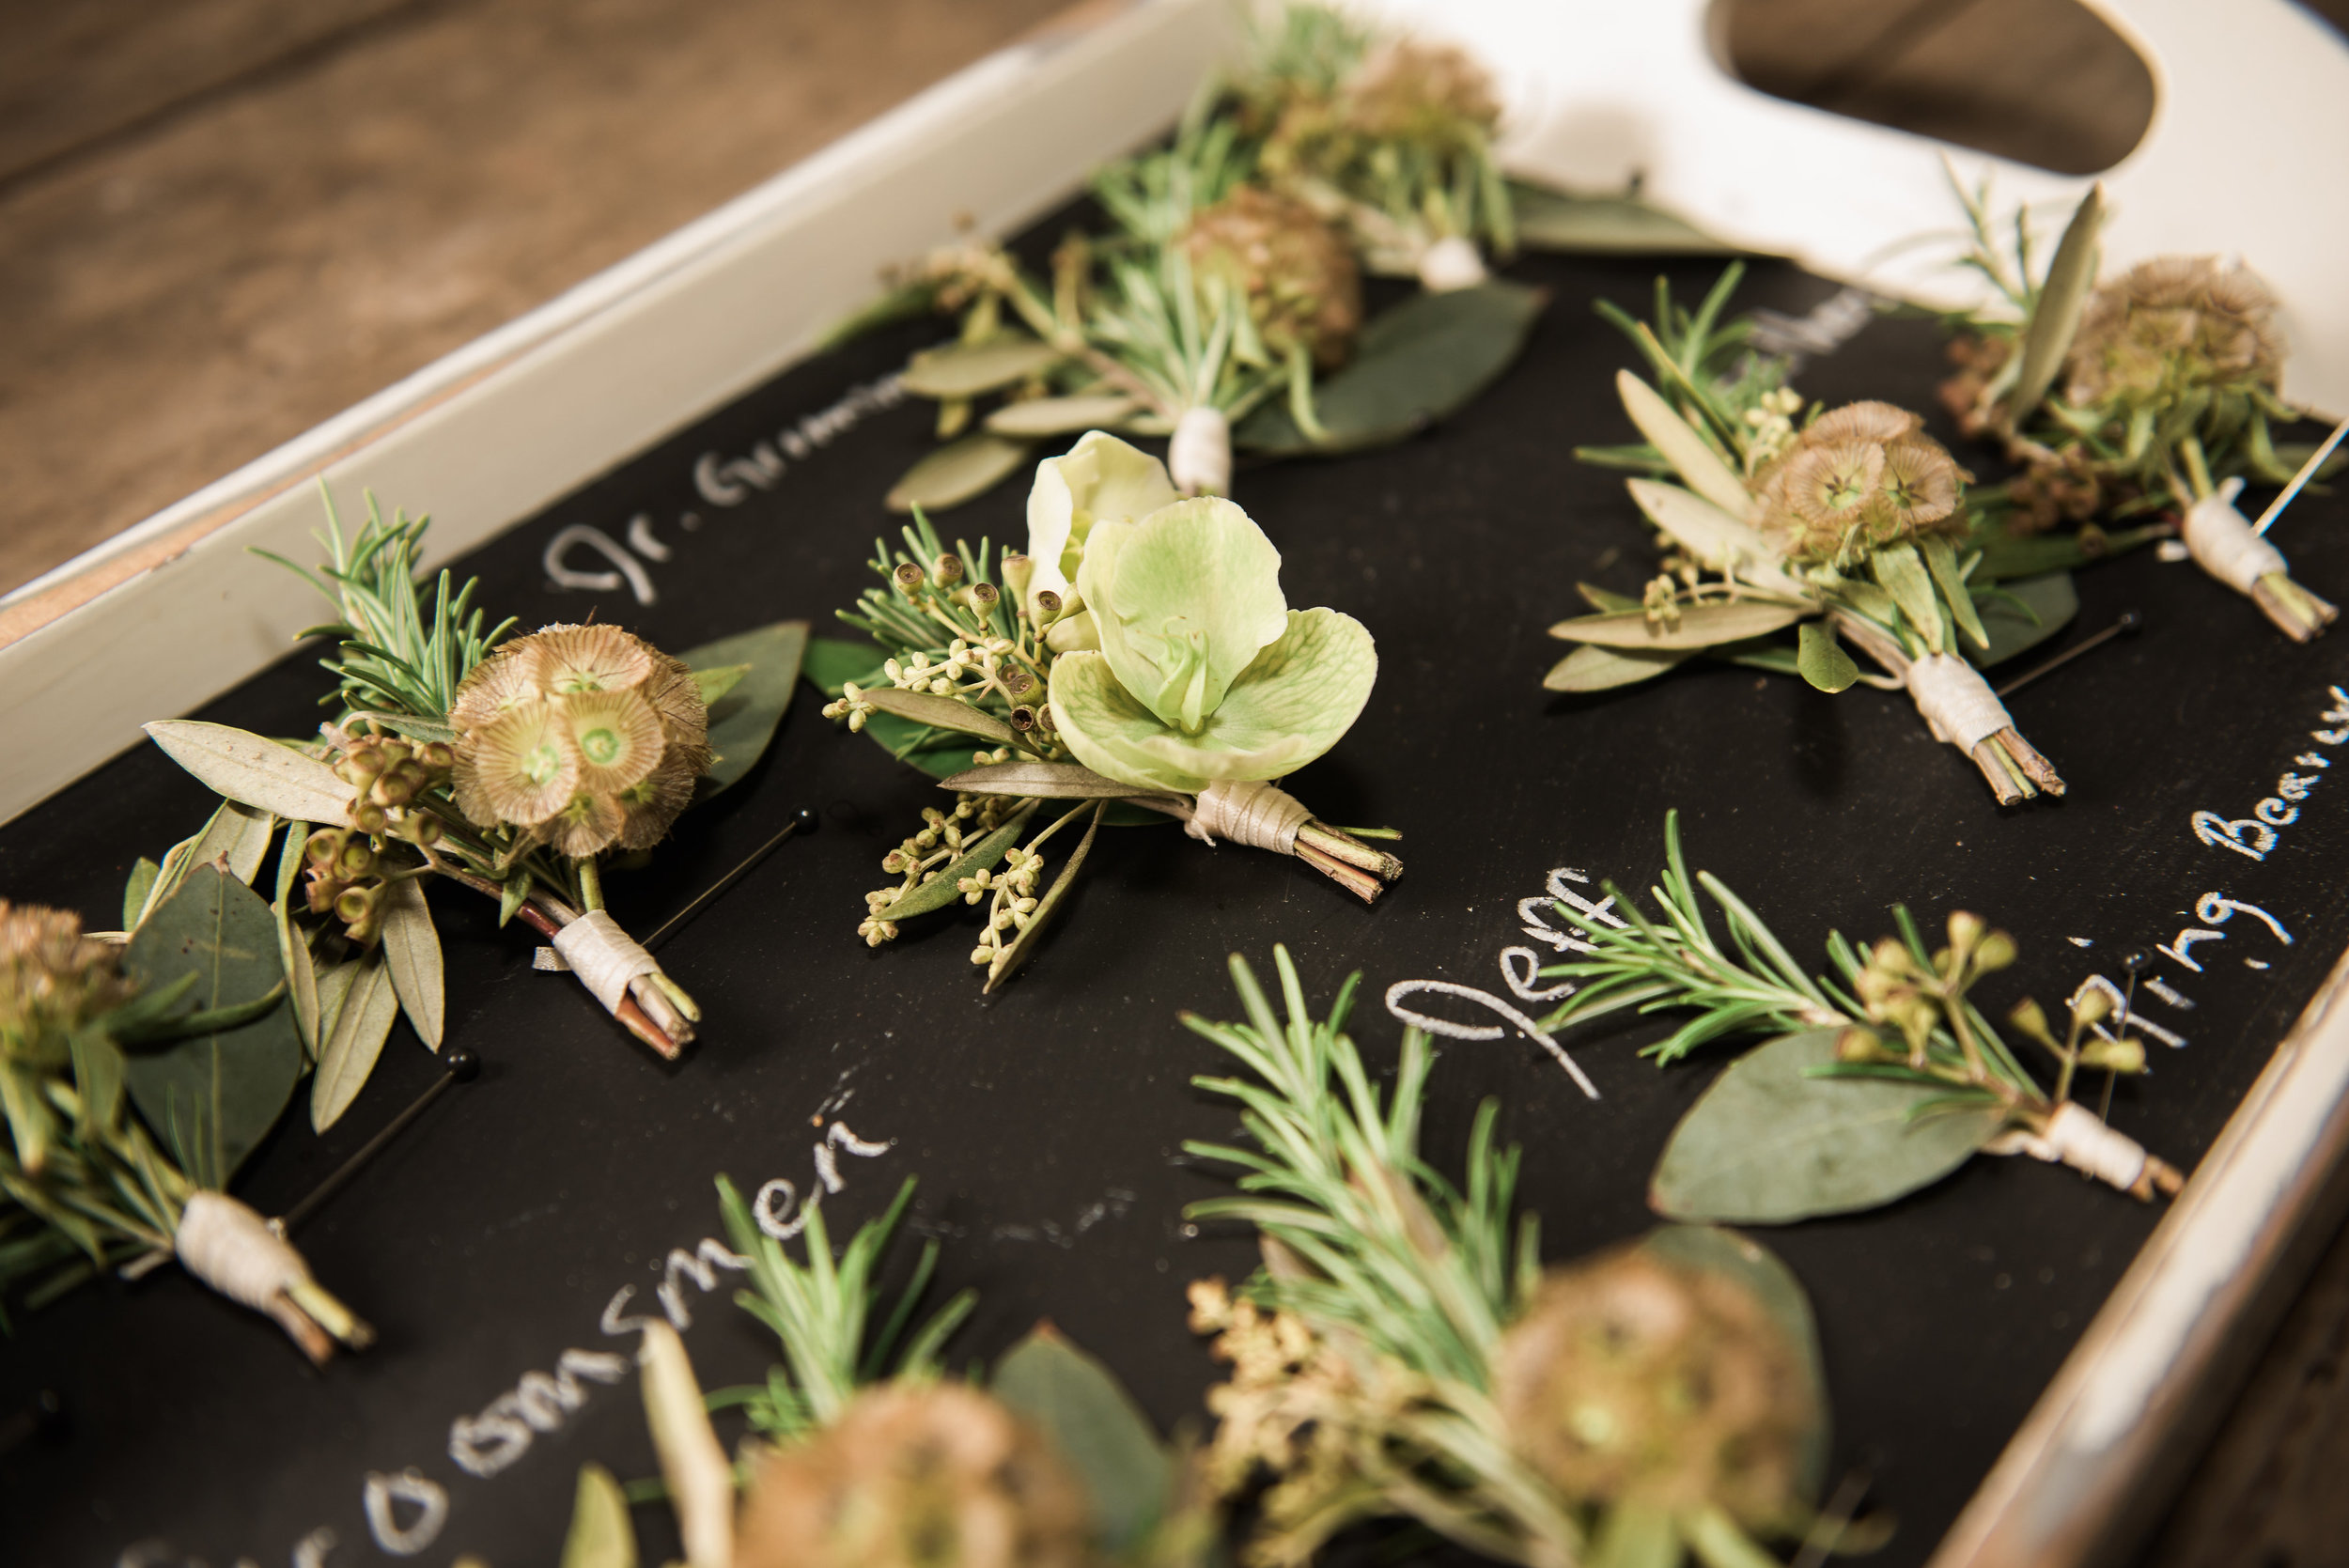 A Green and White Romantic Boho Wedding. Simple greenery boutonnieres with herbs, berries and helebores.   Flowers by Flower Buds   Photograph by Heart and Oak Photography   Venue The Ruins at Kellum Valley Farm